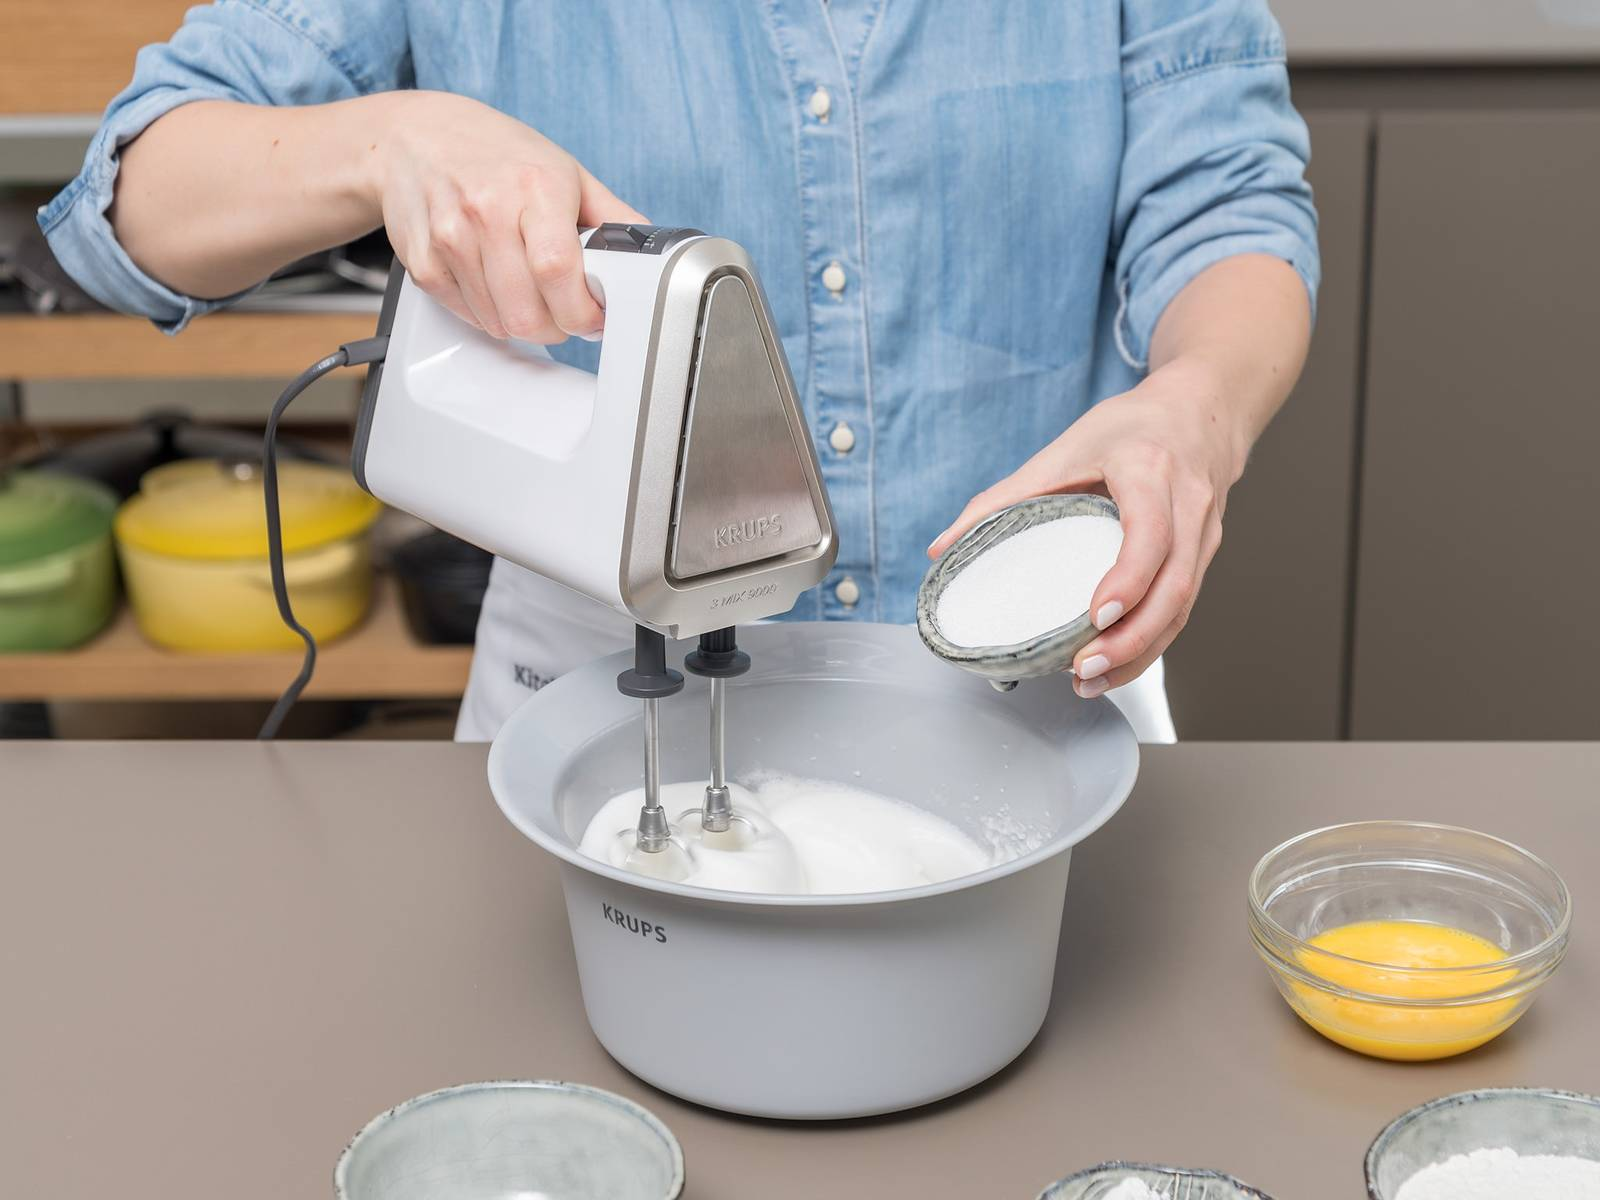 Preheat oven to 190°C/375°F. Separate eggs. Beat egg yolks in a small bowl with a fork. Place egg whites into the bowl of a stand mixer or a large mixing bowl and beat together with salt until stiff peaks form. Slowly add part of sugar and whisk for approx. 1 – 2 more min. Carefully fold egg yolks into egg whites using a whisk.